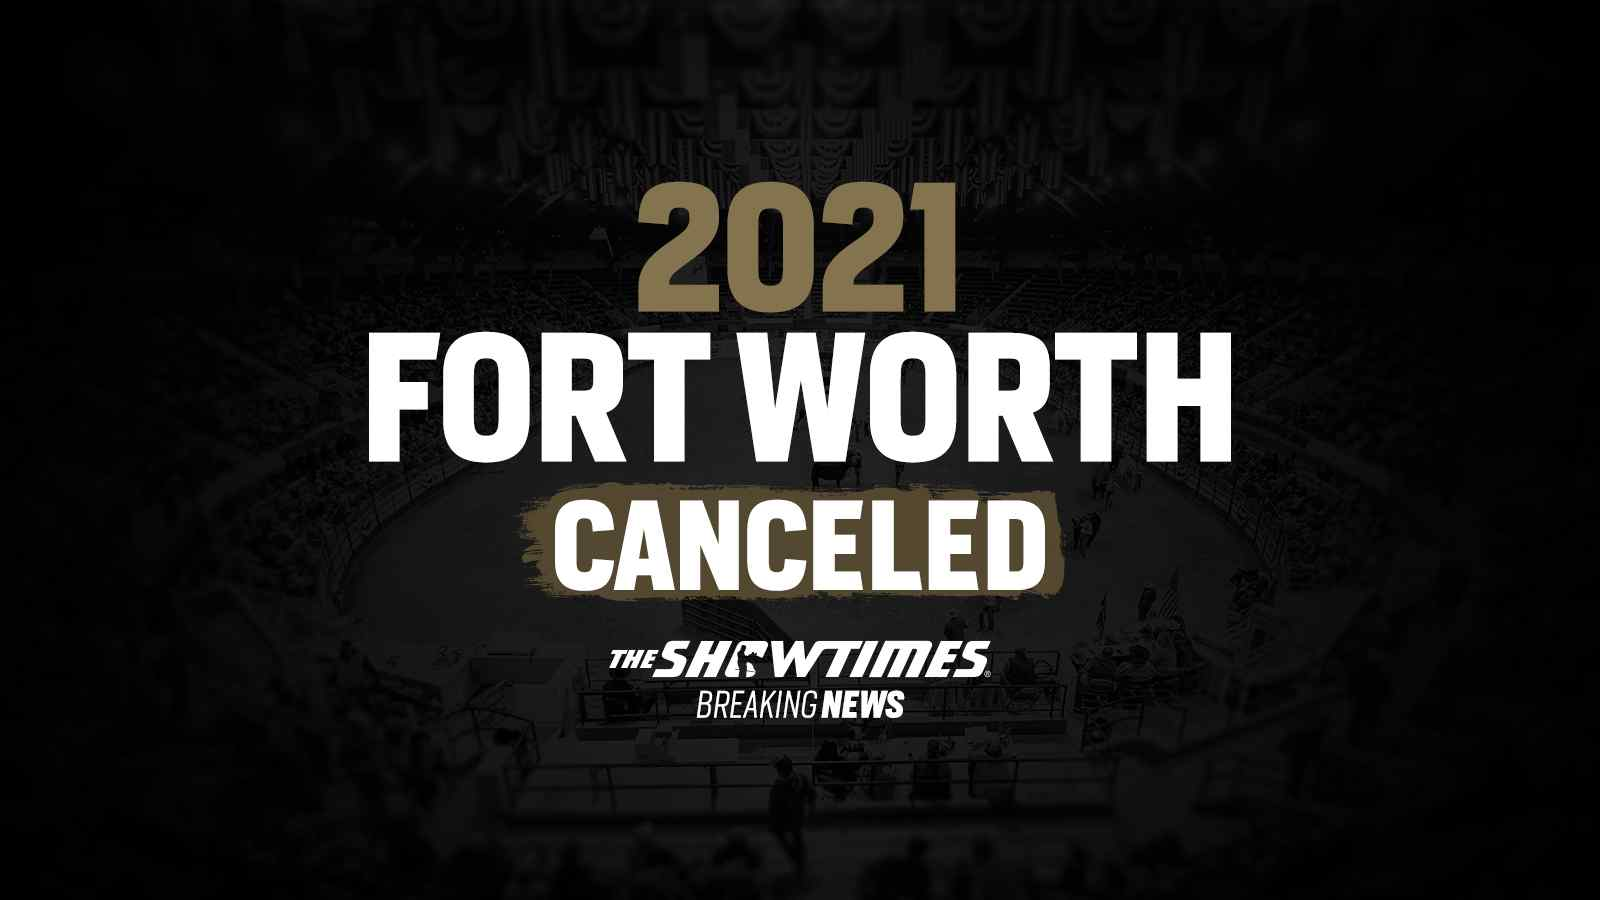 2021 Fort Worth Canceled